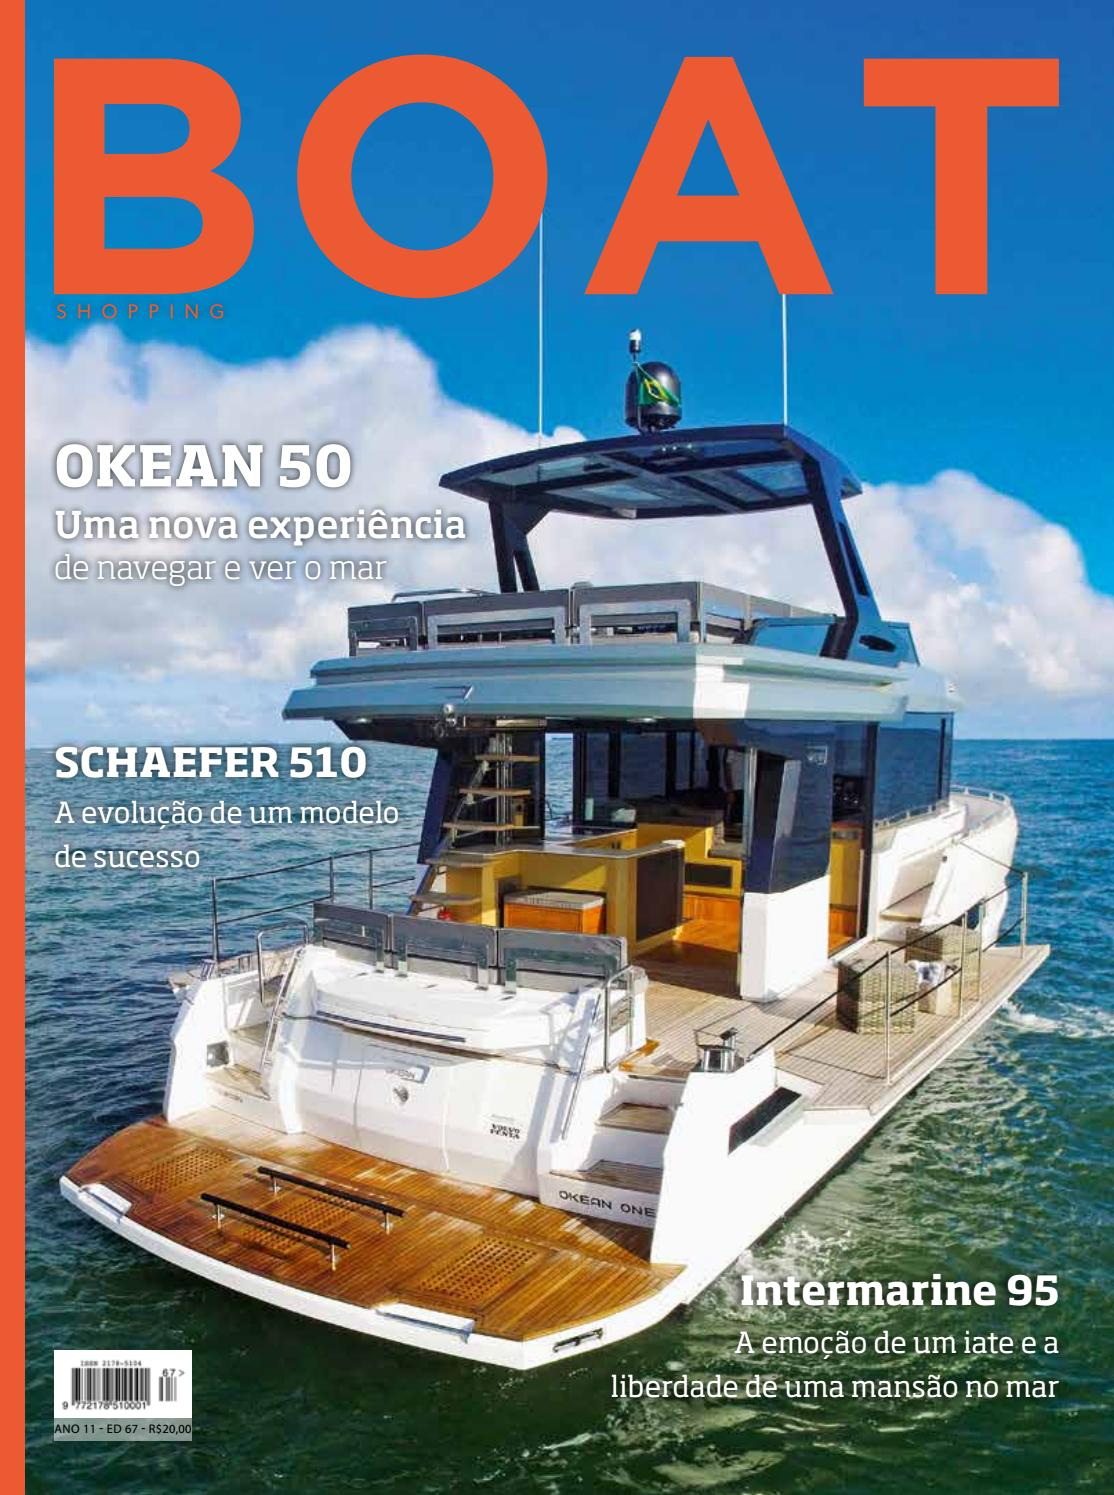 December Sea Magazine By Duncan McIntosh Company Issuu - Baja boat decals easy removallarson boat raised decal lsrorange